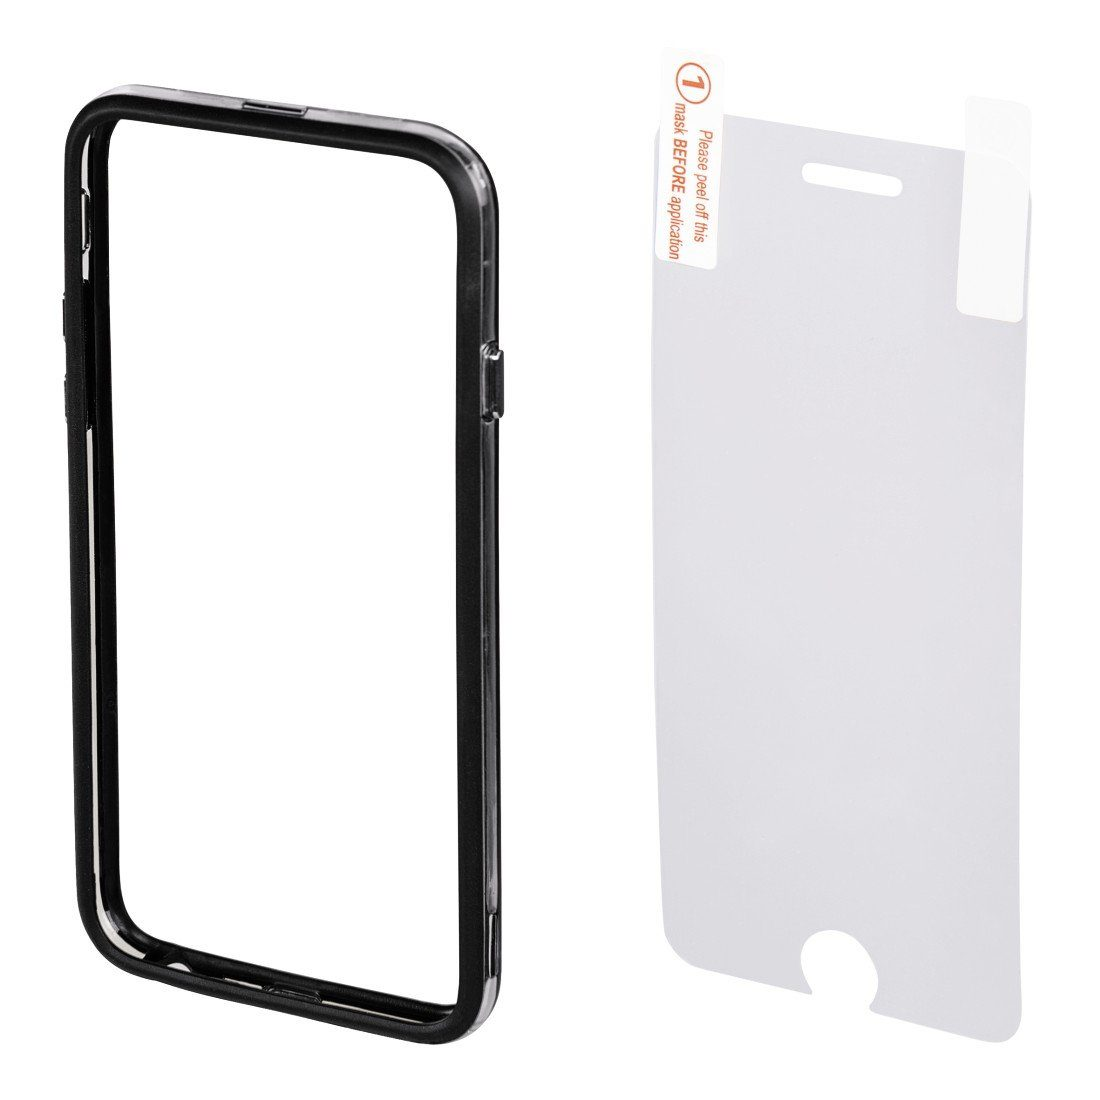 Hama Cover Edge Protector für Apple iPhone 6/6s + Displayfolie